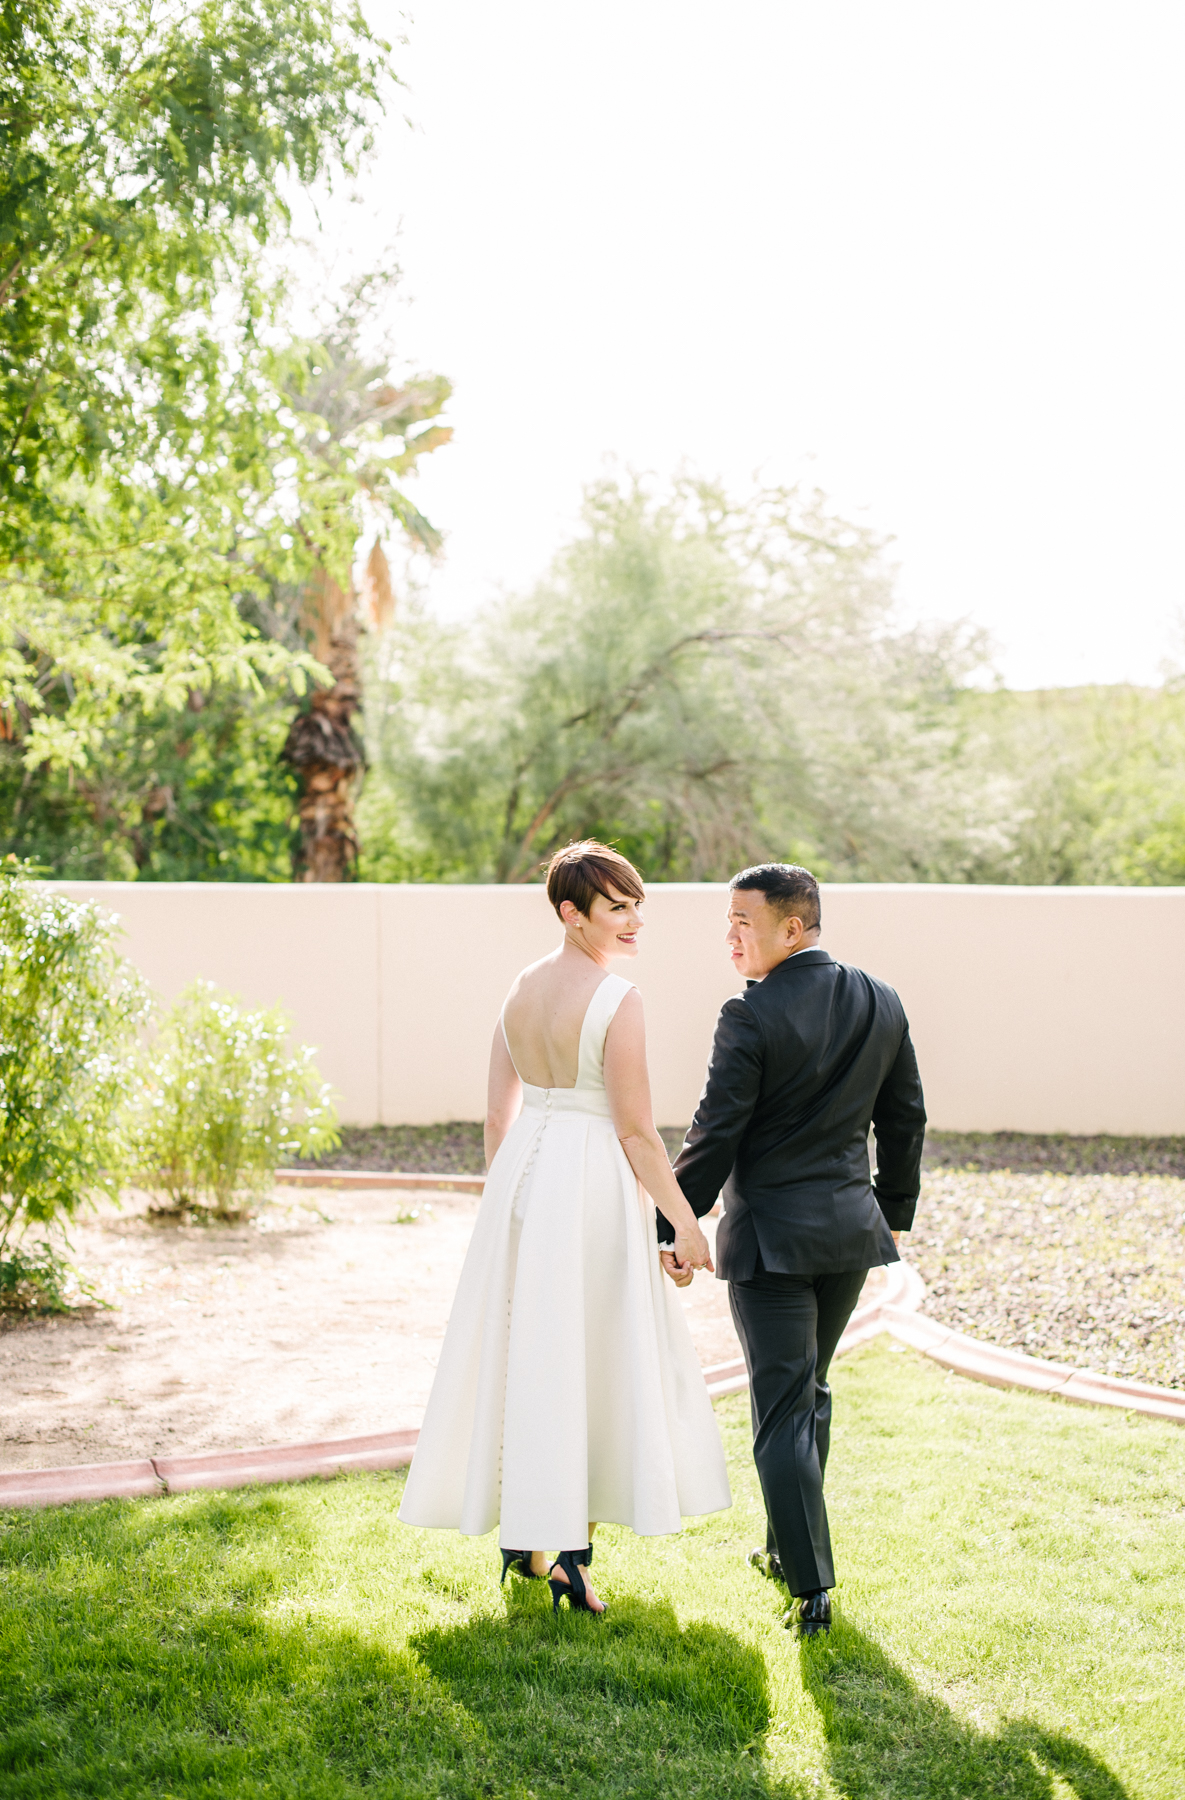 Secret Garden Event Center Wedding - Meredith Amadee Photography-50.jpg